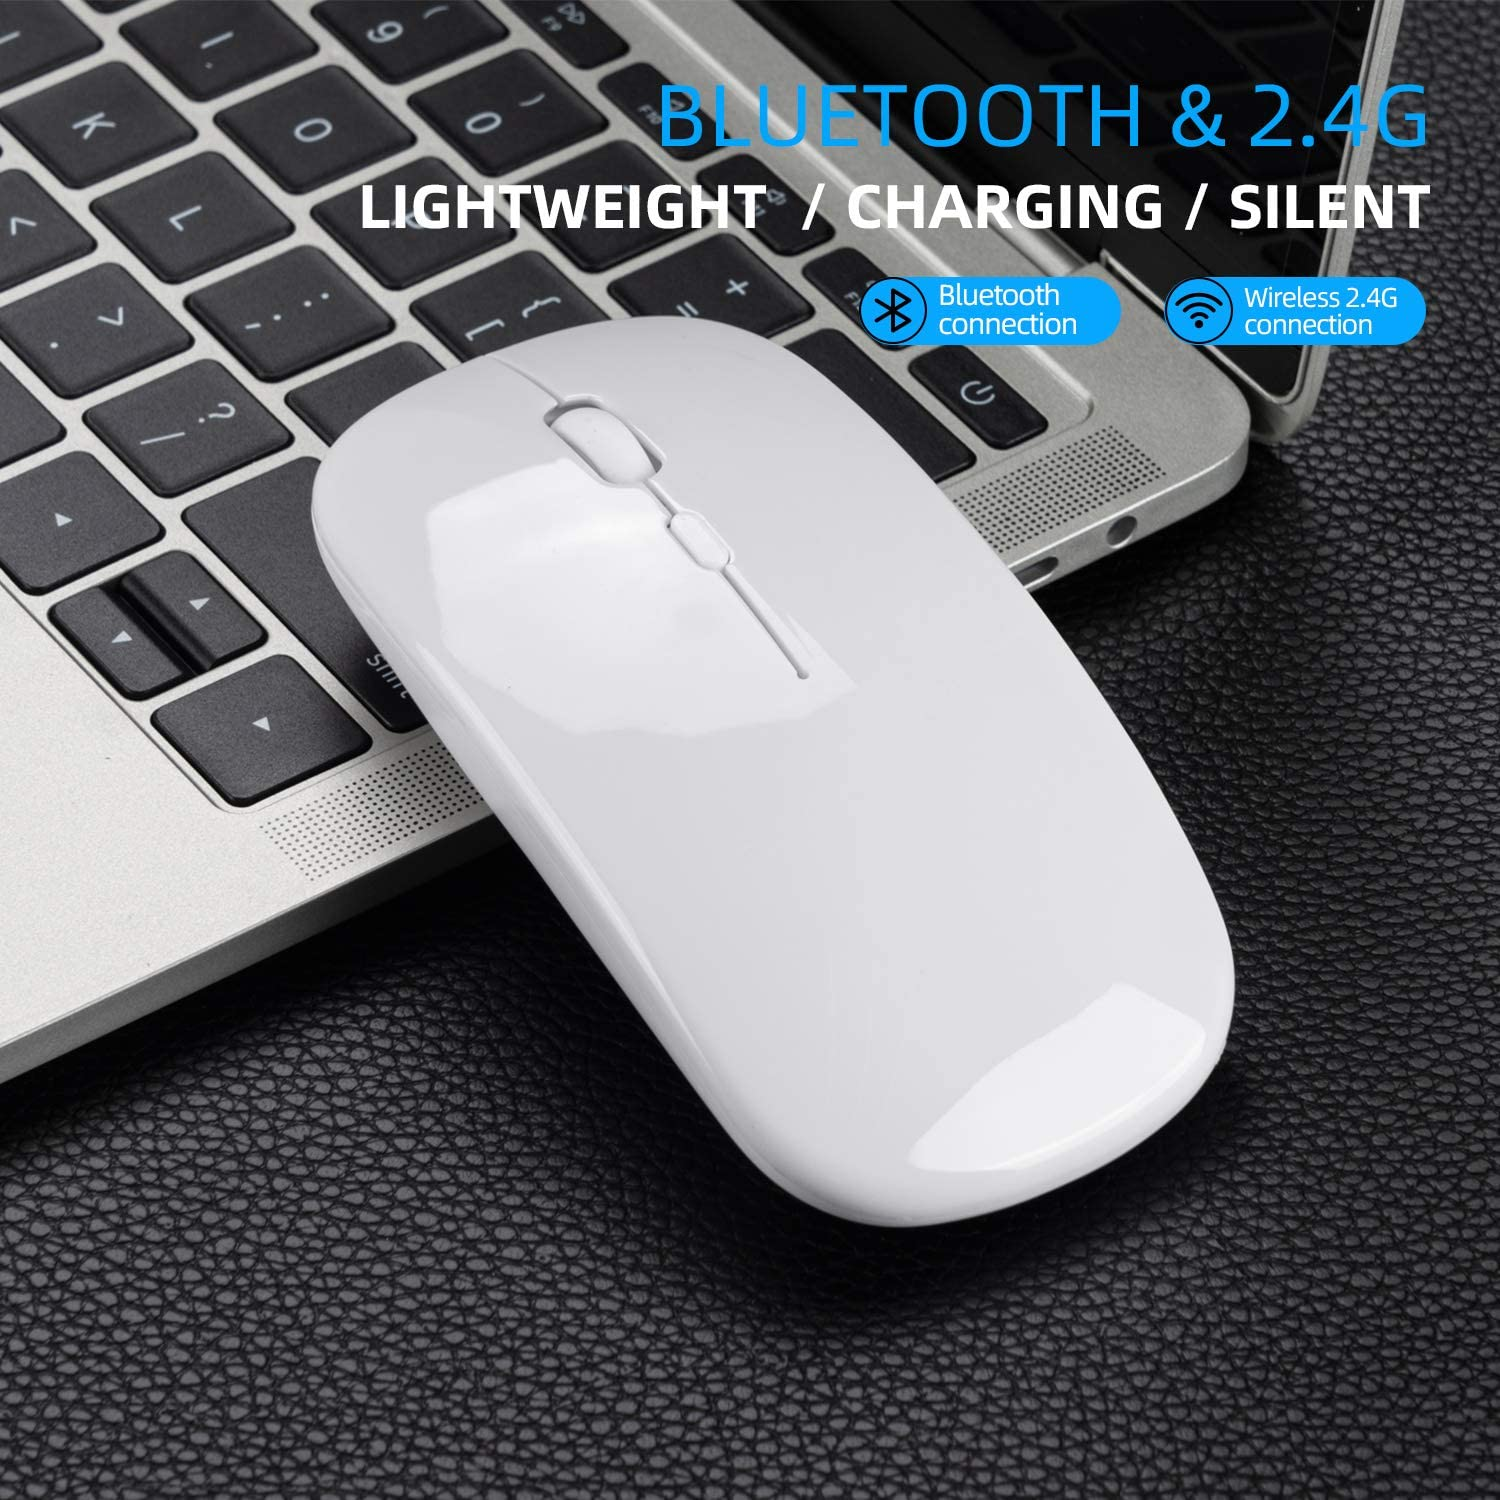 Alician Dual Mode Bluetooth 4.0 2.4G Wireless Mute Computer Mouse for PC Laptop Rose Gold